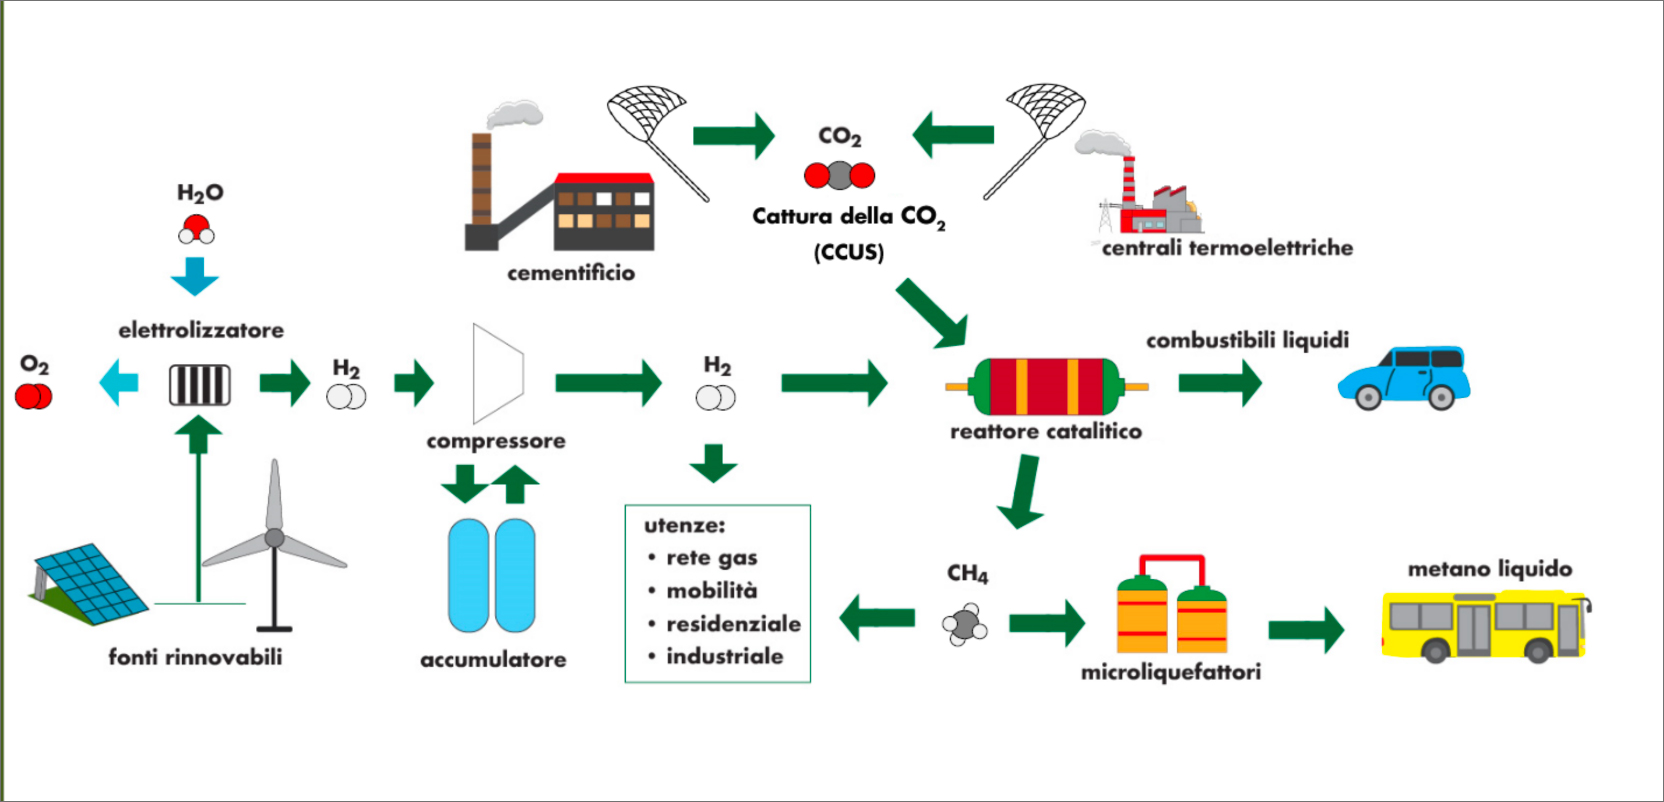 Simplified scheme of integration of CO2 sequestration systems and electrolysis of water from renewable sources for the production of liquid and gaseous fuels